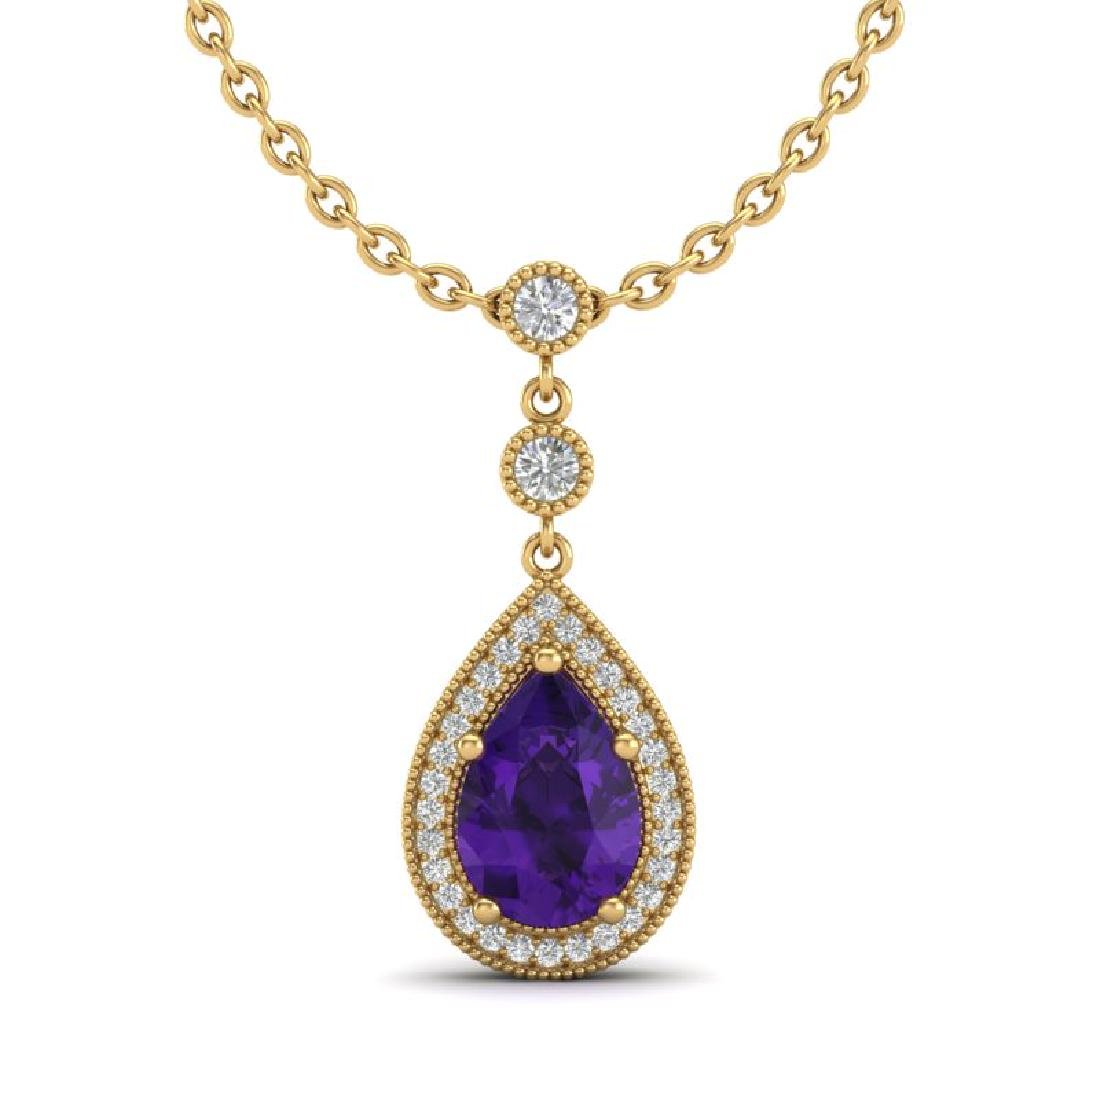 2.25 CTW Amethyst & Micro Pave VS/SI Diamond Necklace - 2